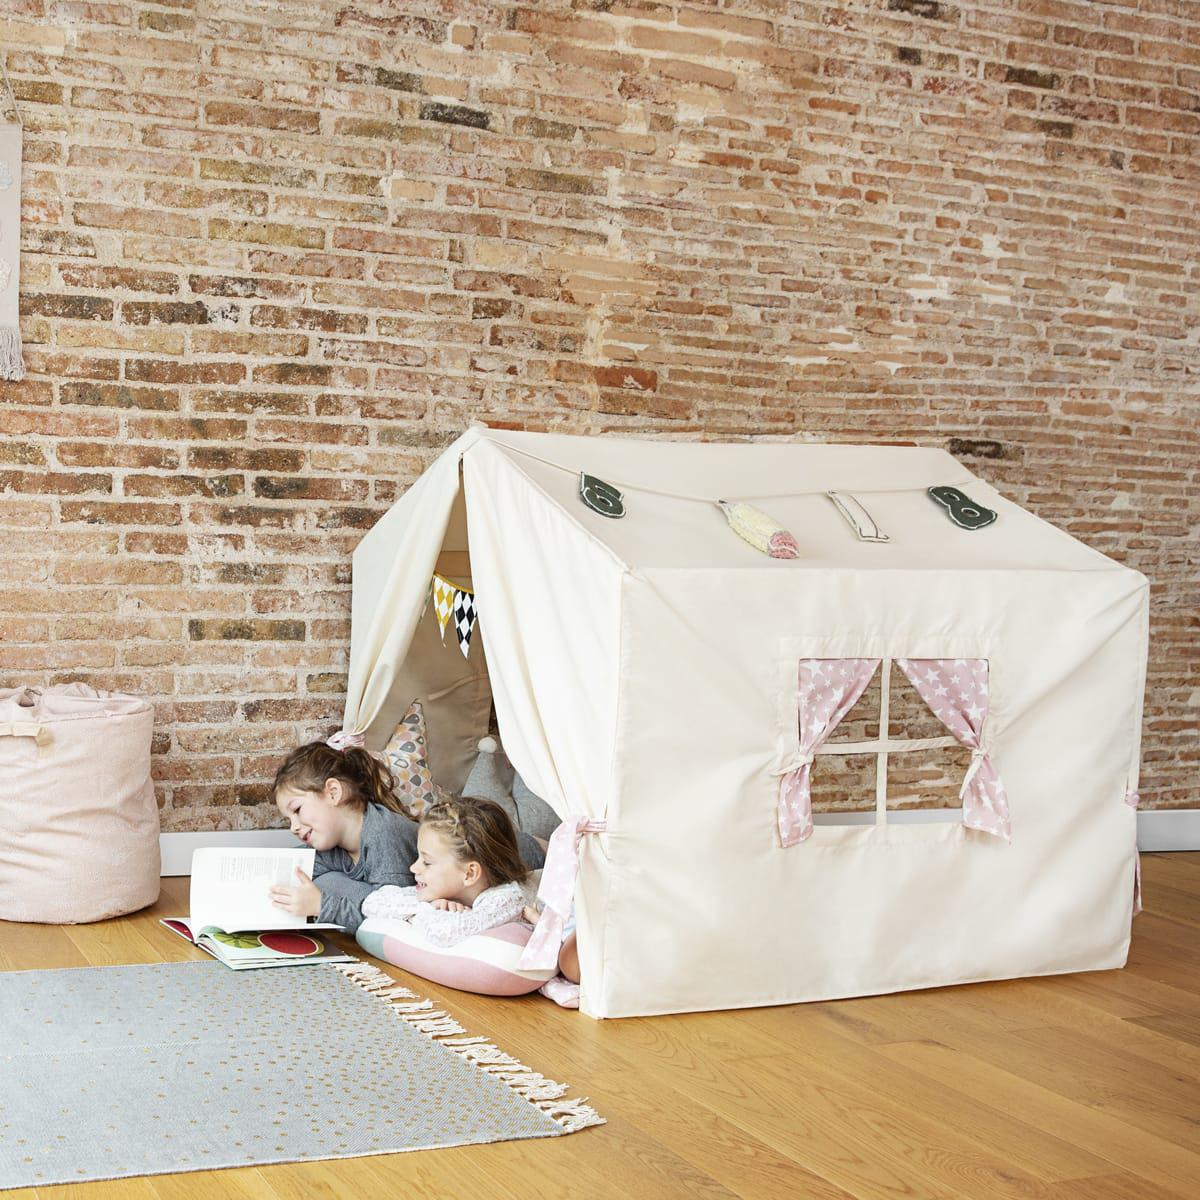 Textile habillage cabane PLAYHOUSE By A.K. rose